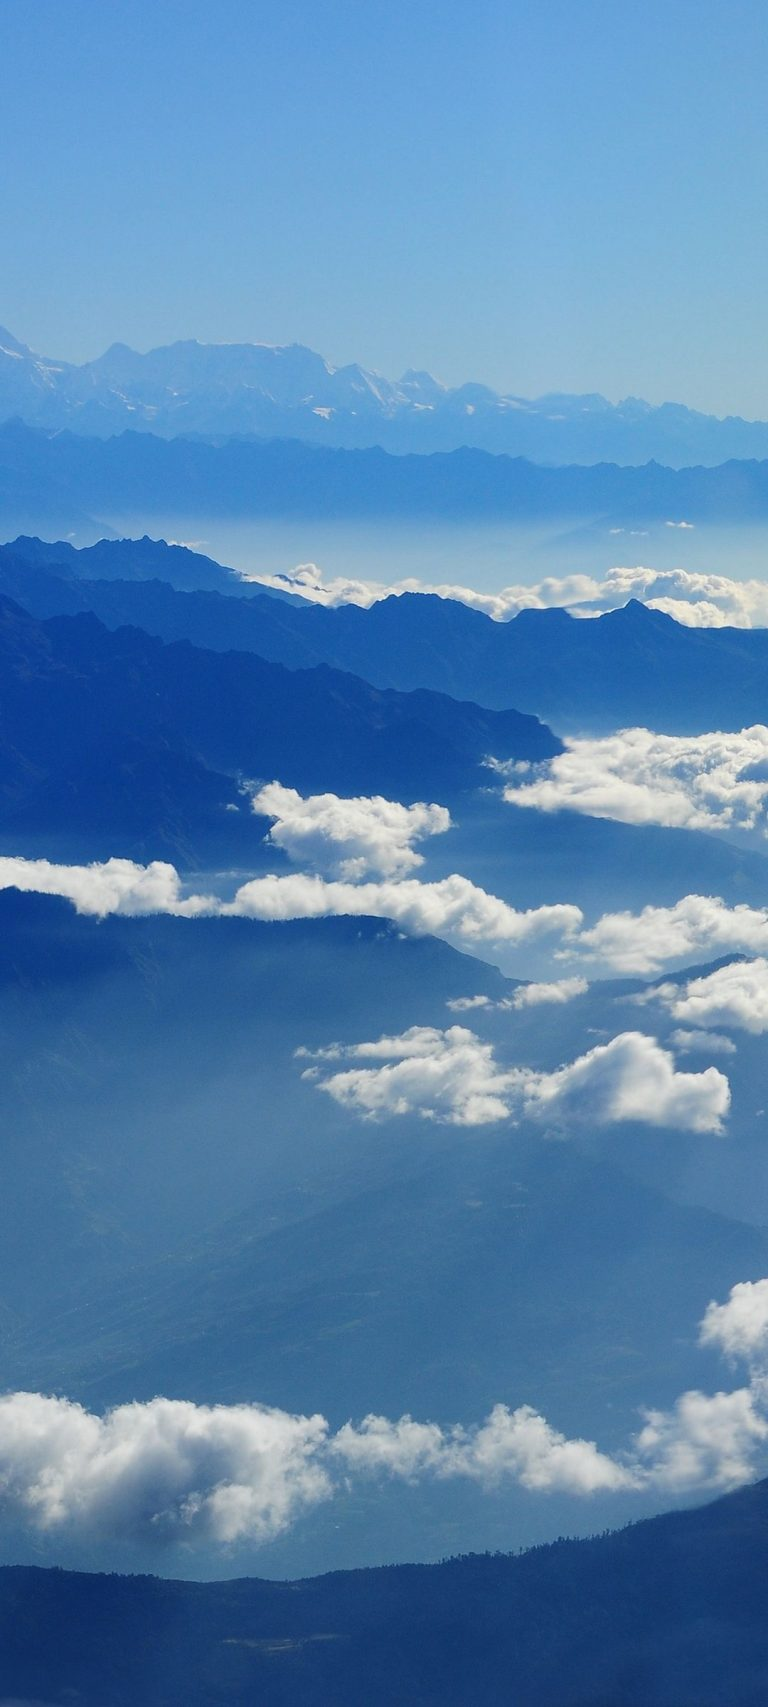 Sky Clouds Mountains 1080x2400 768x1707